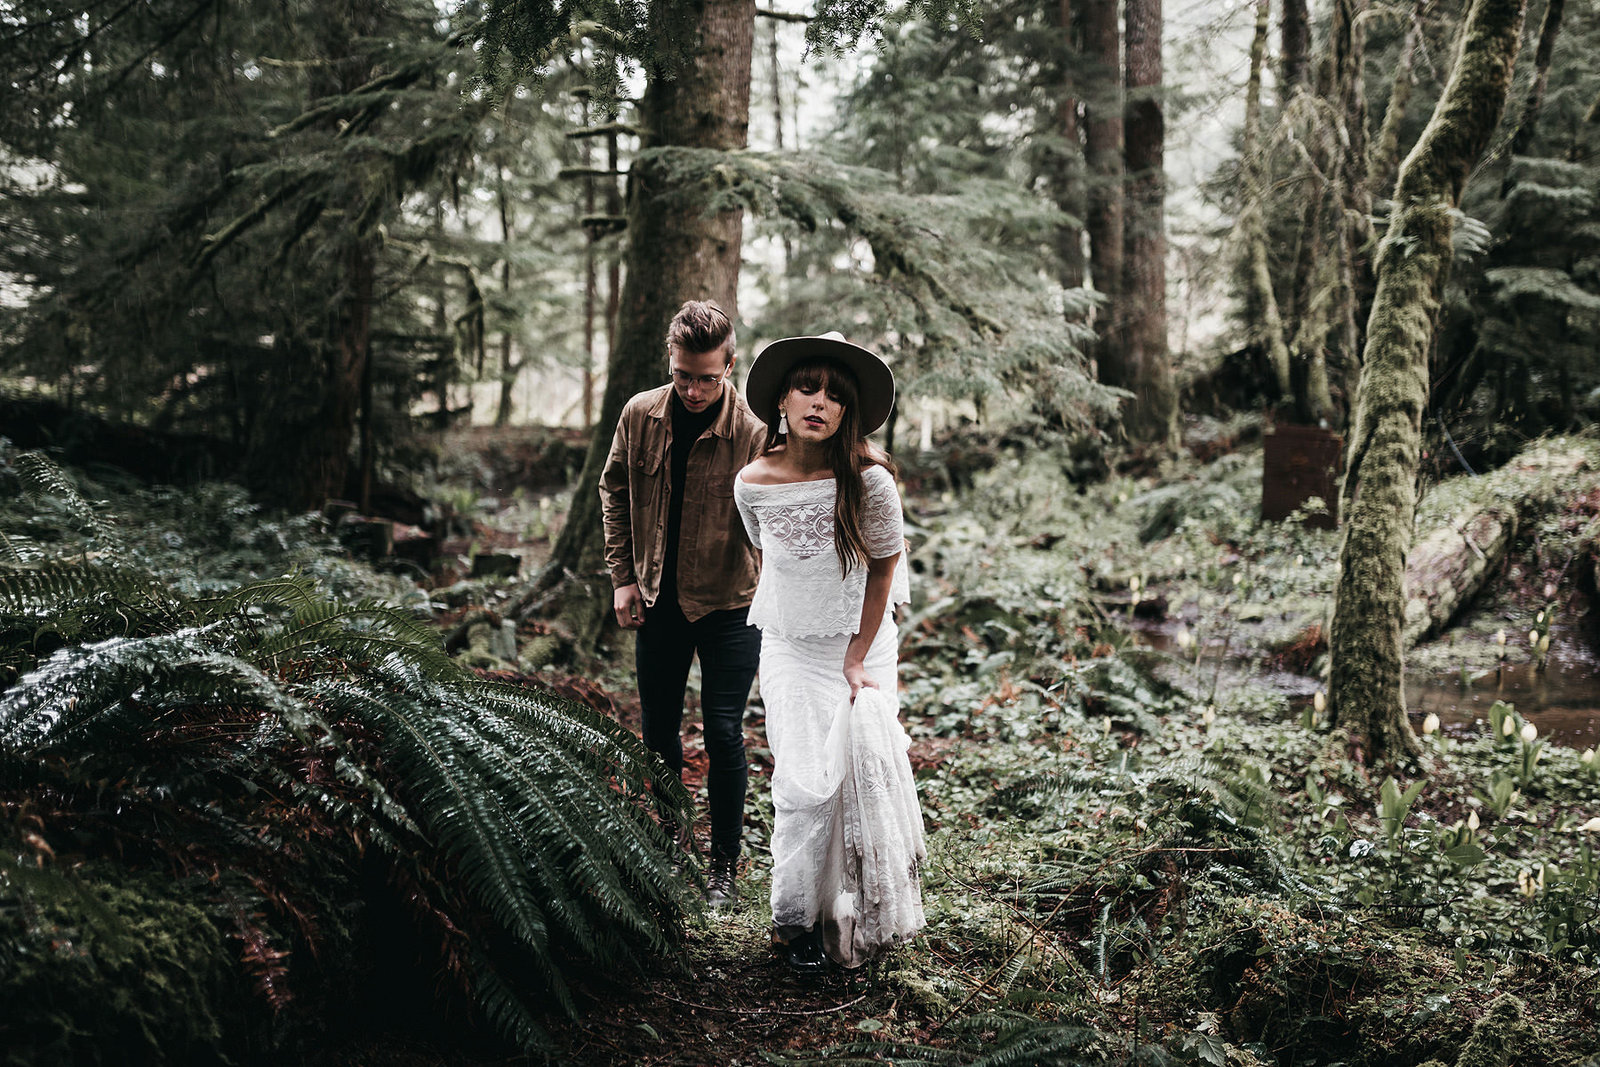 white-magazine-athena-camron-seattle-oregon-wedding-photography-woodlands-house-boho-elopement-inspiration-57